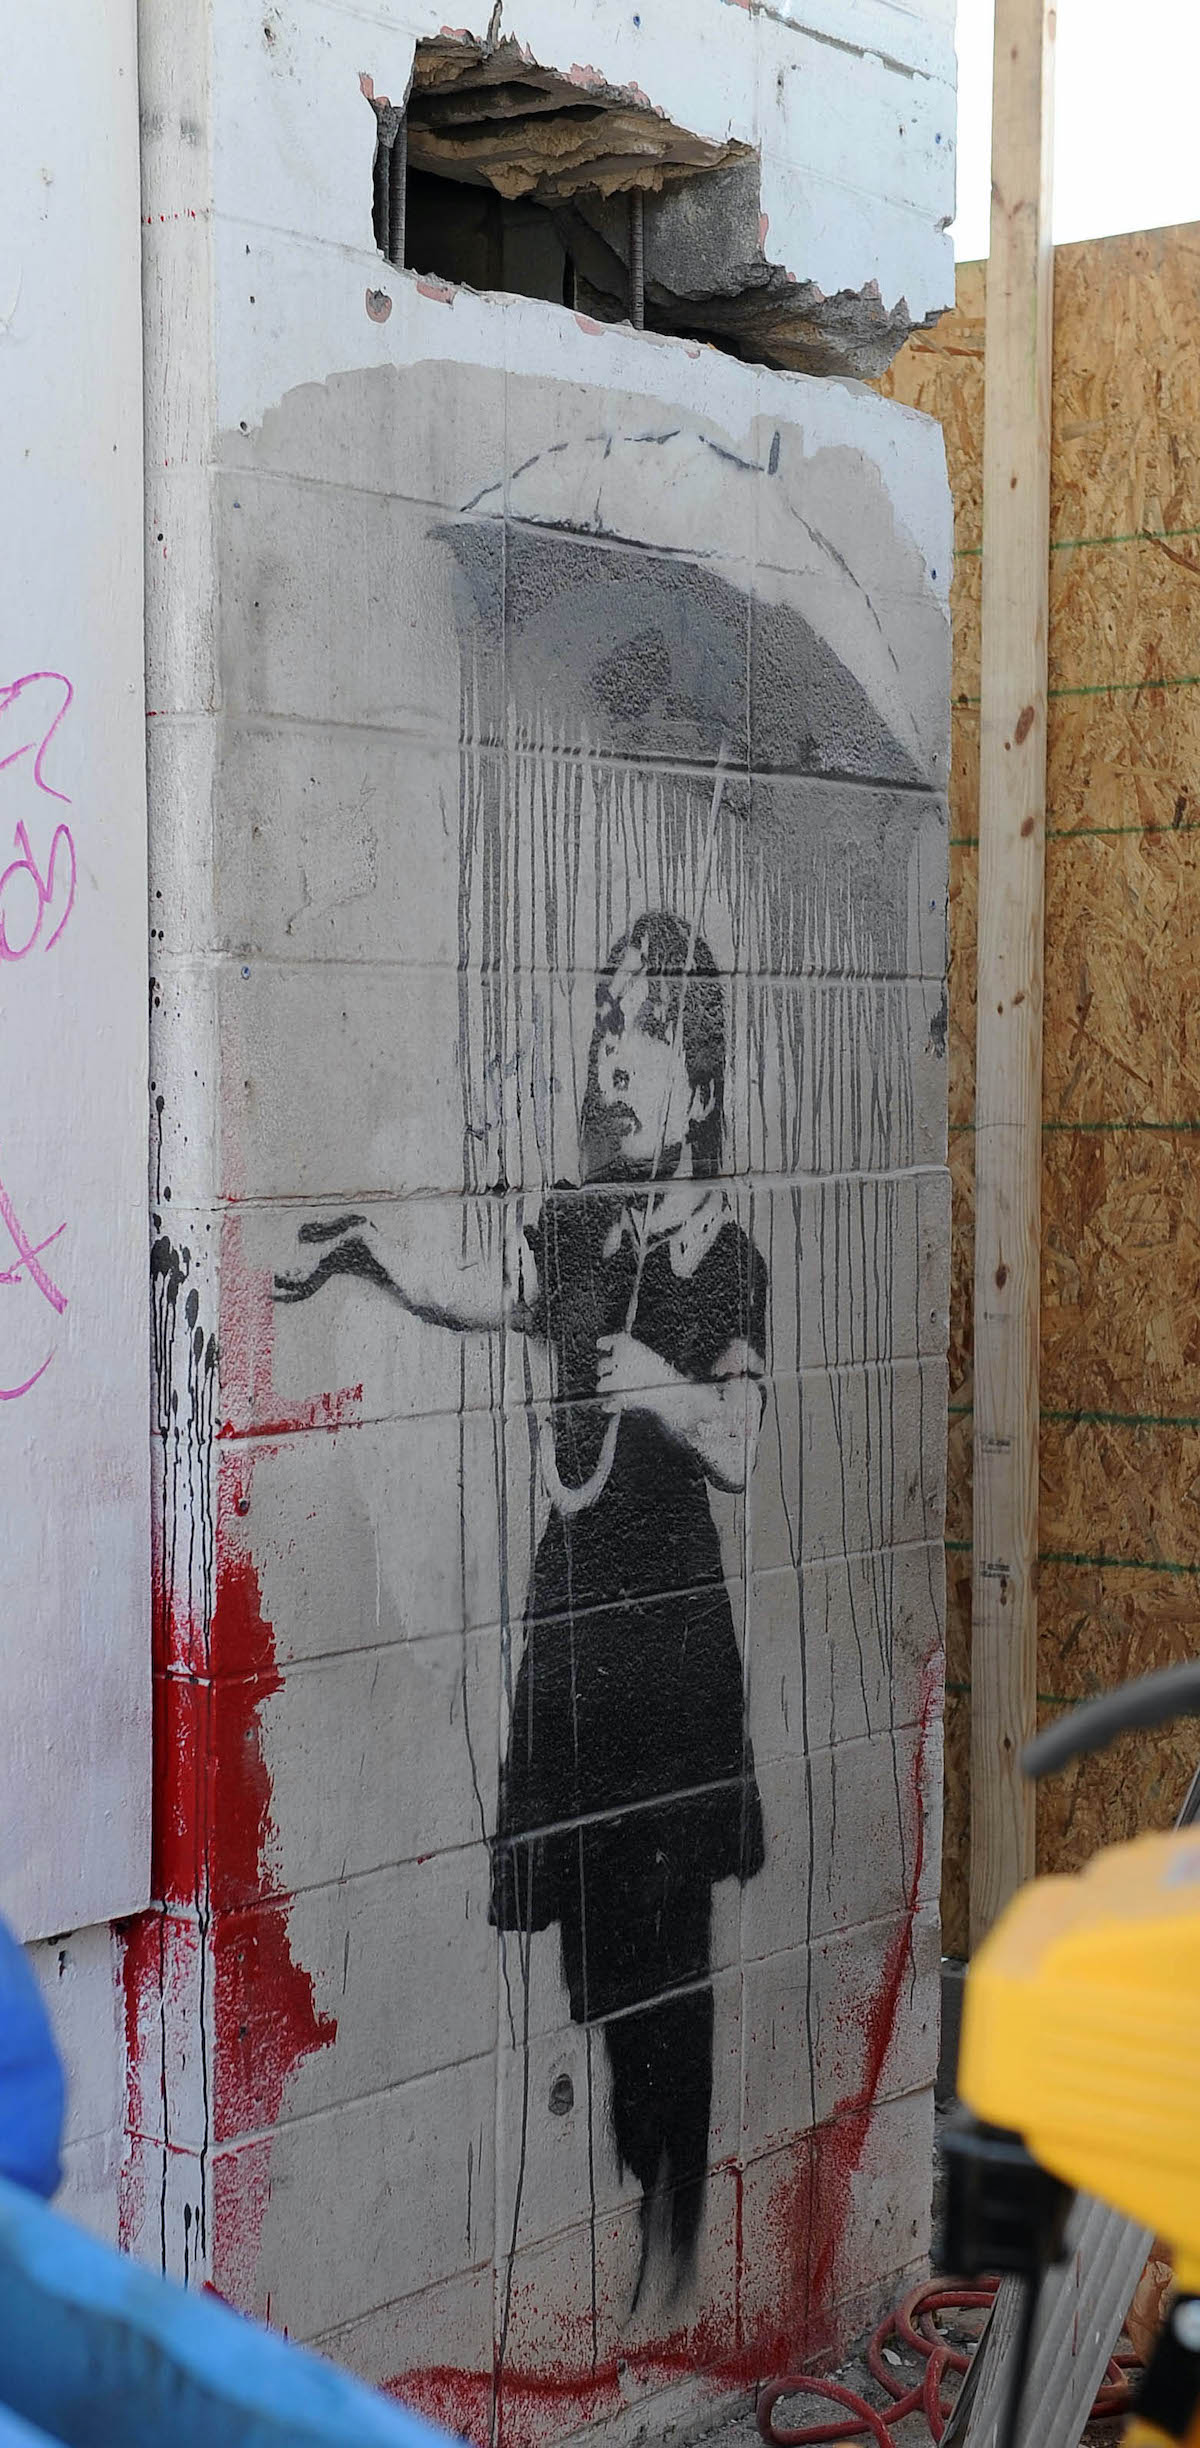 Banksy Attempted Theft